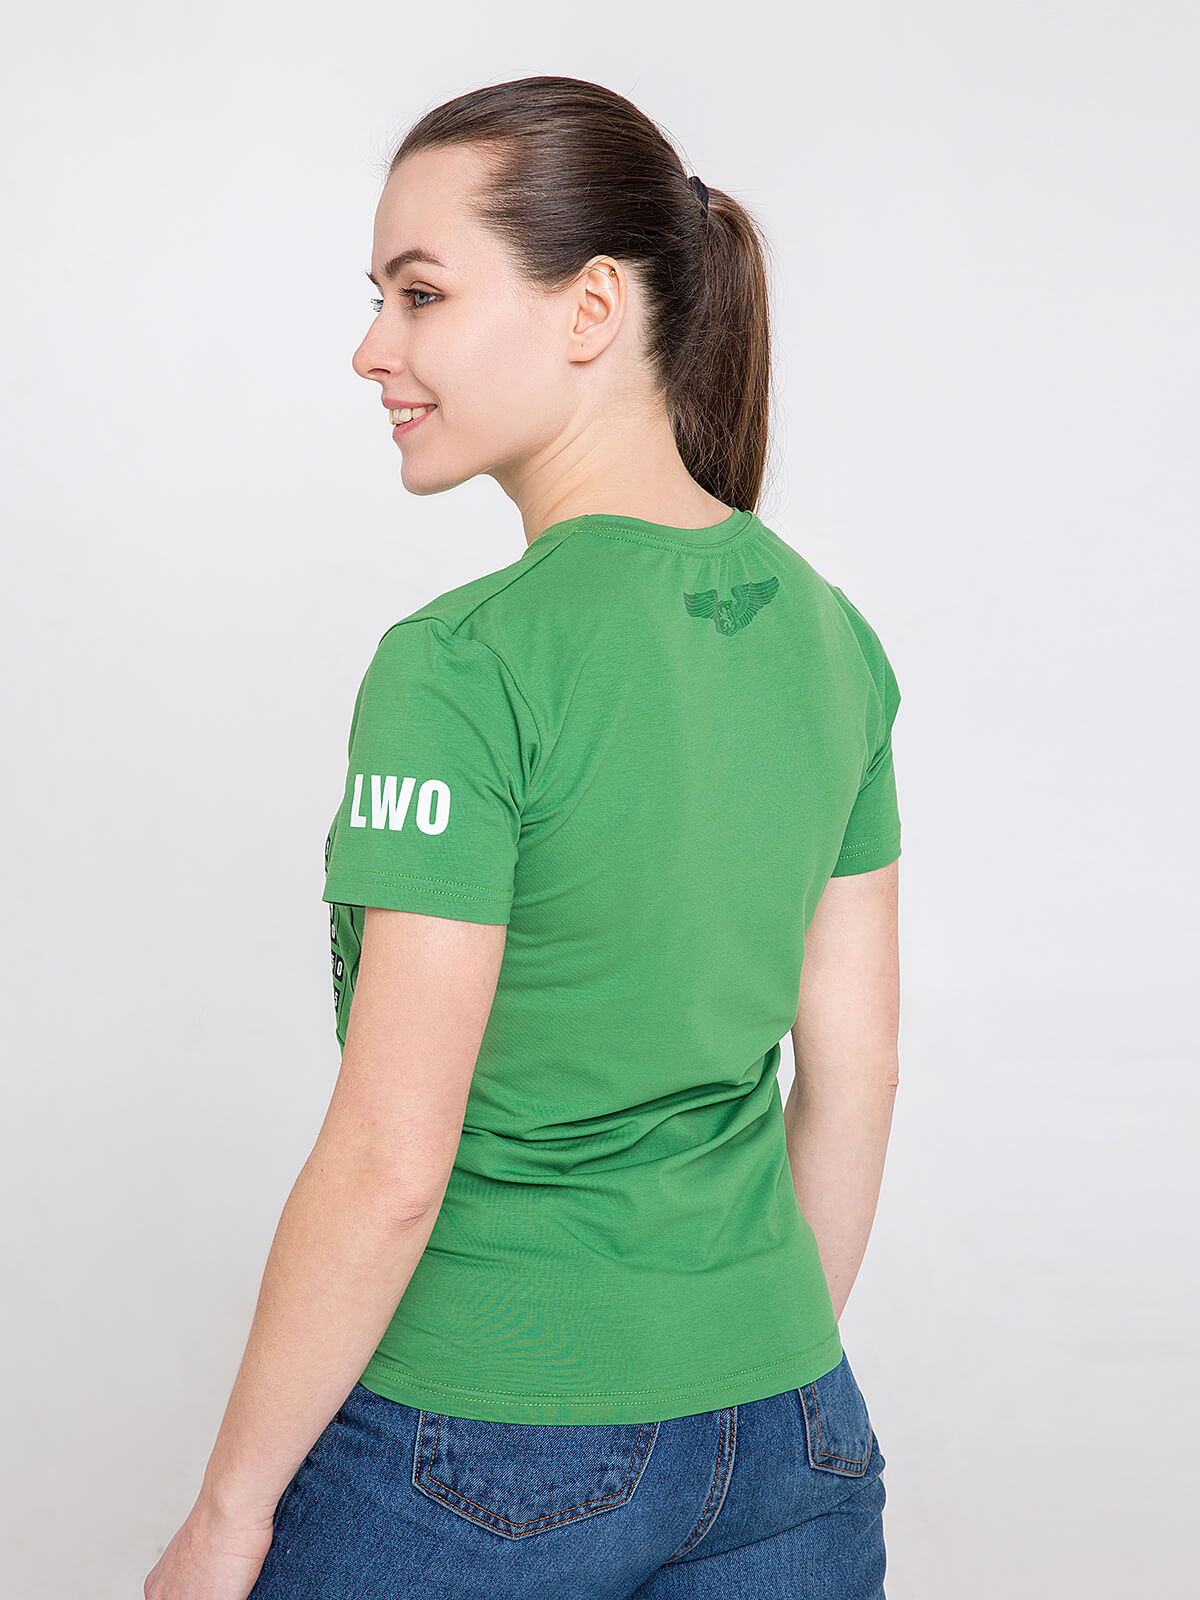 Women's T-Shirt Airport Lviv. Color green.  Technique of prints applied: silkscreen printing.